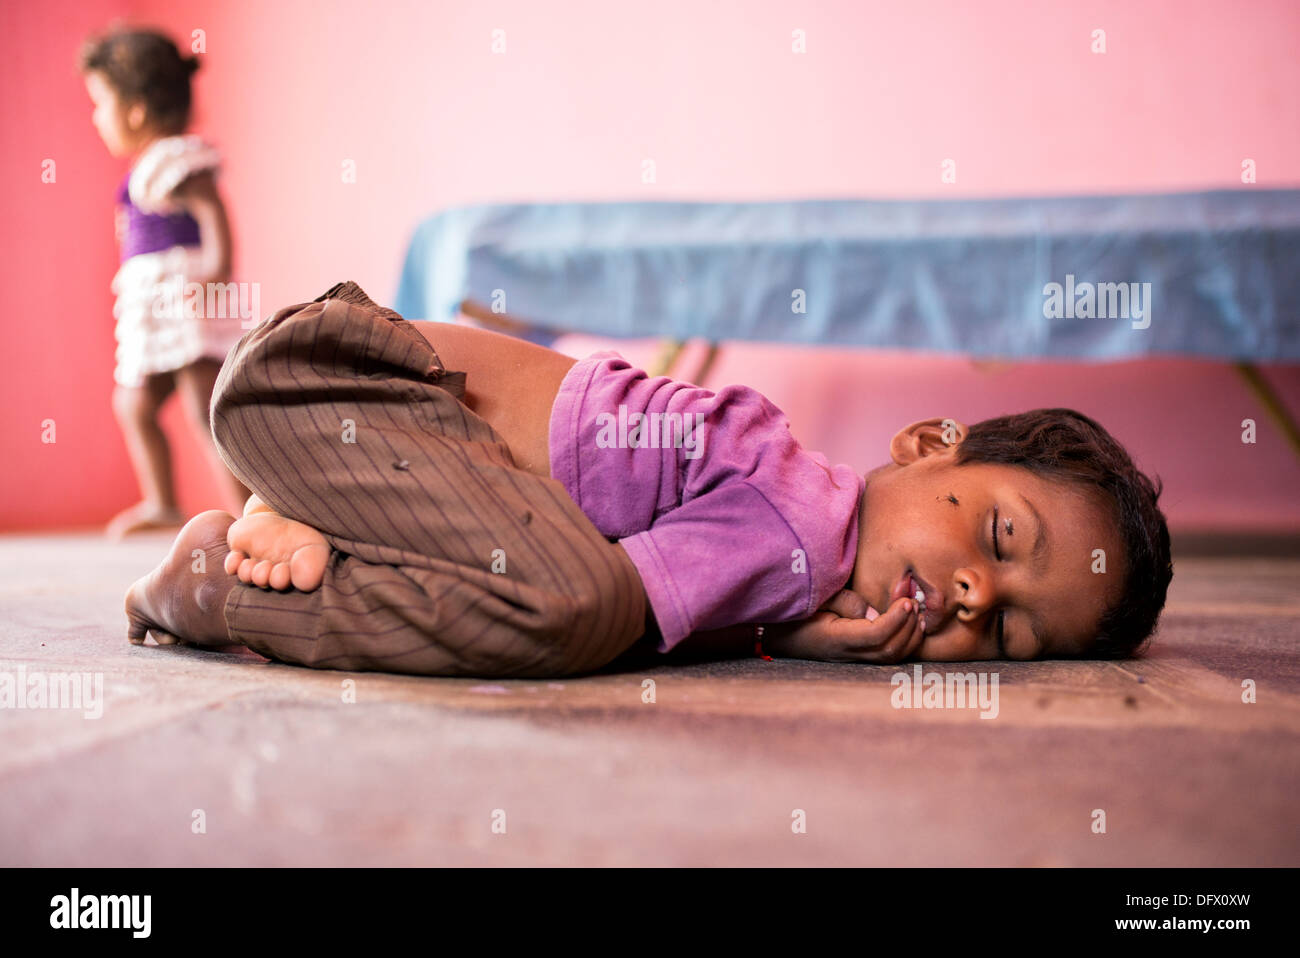 Small indian boy asleep on a stone floor in a rural indian village house. Selective focus. - Stock Image